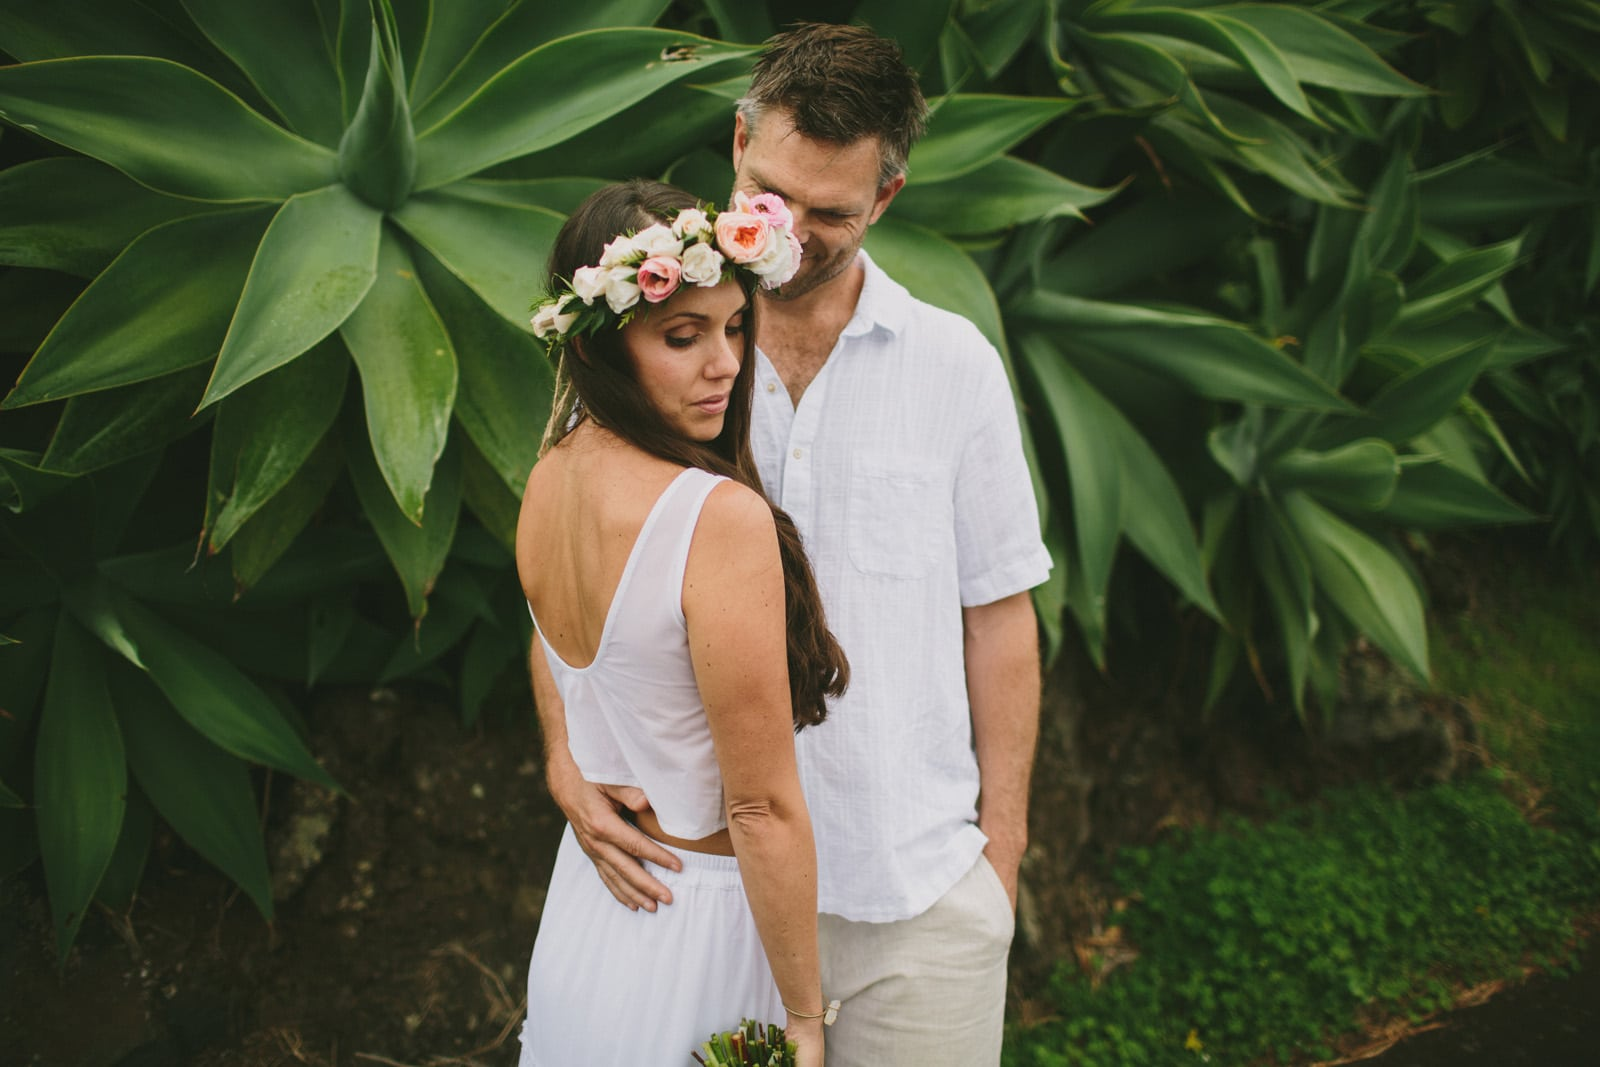 Maui_Wedding_Wailea_Kapalua_Hawaii_Photographer_025